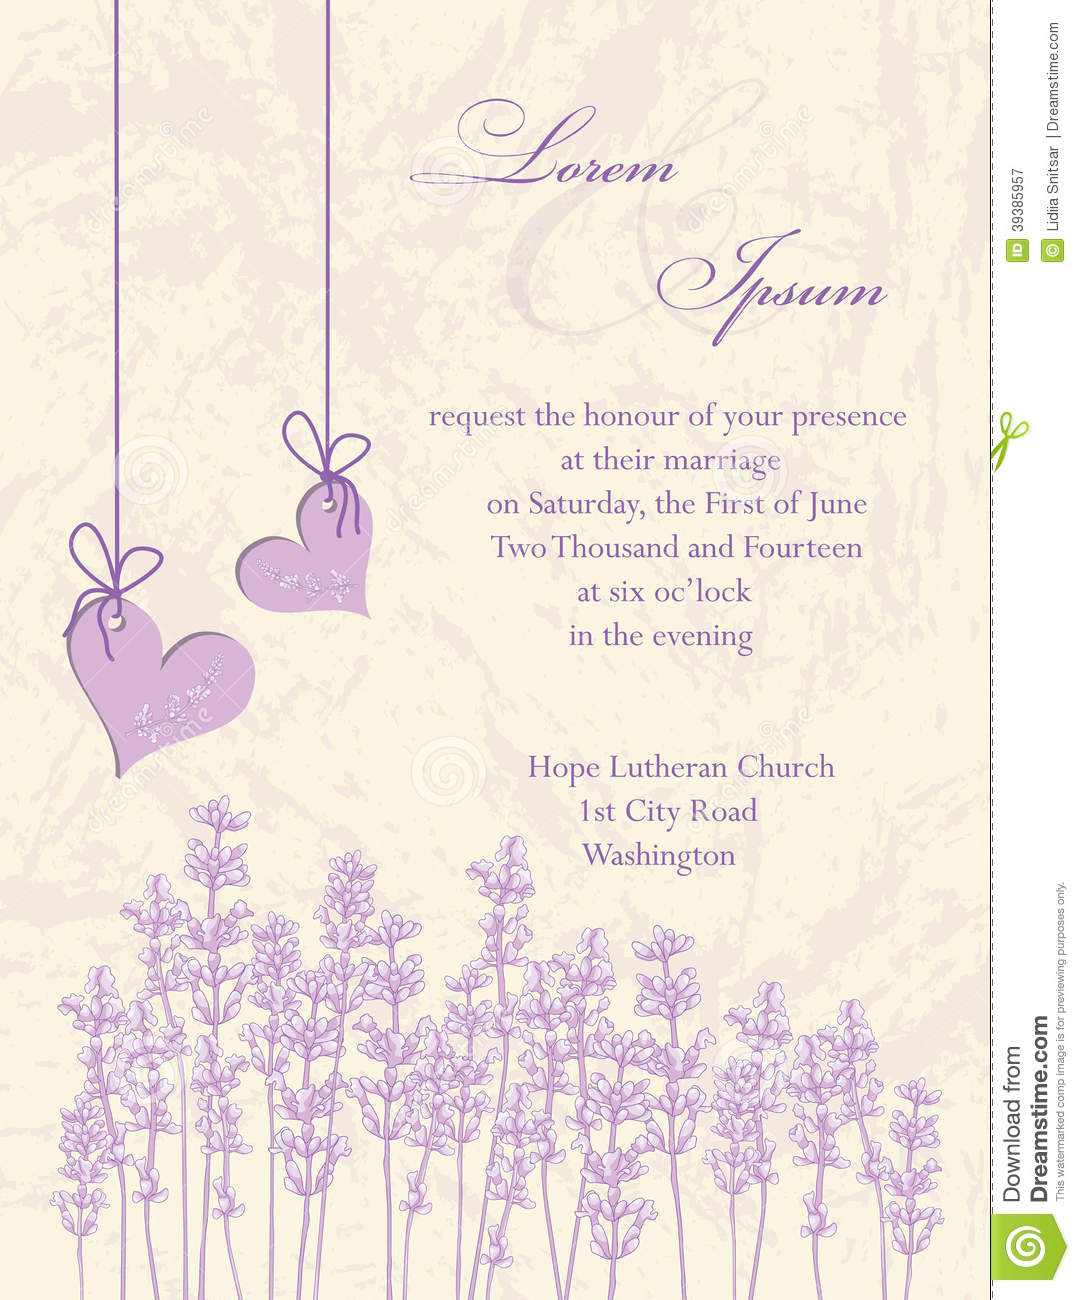 royalty free stock photo download wedding invitation card lavender background - Lavender Wedding Invitations